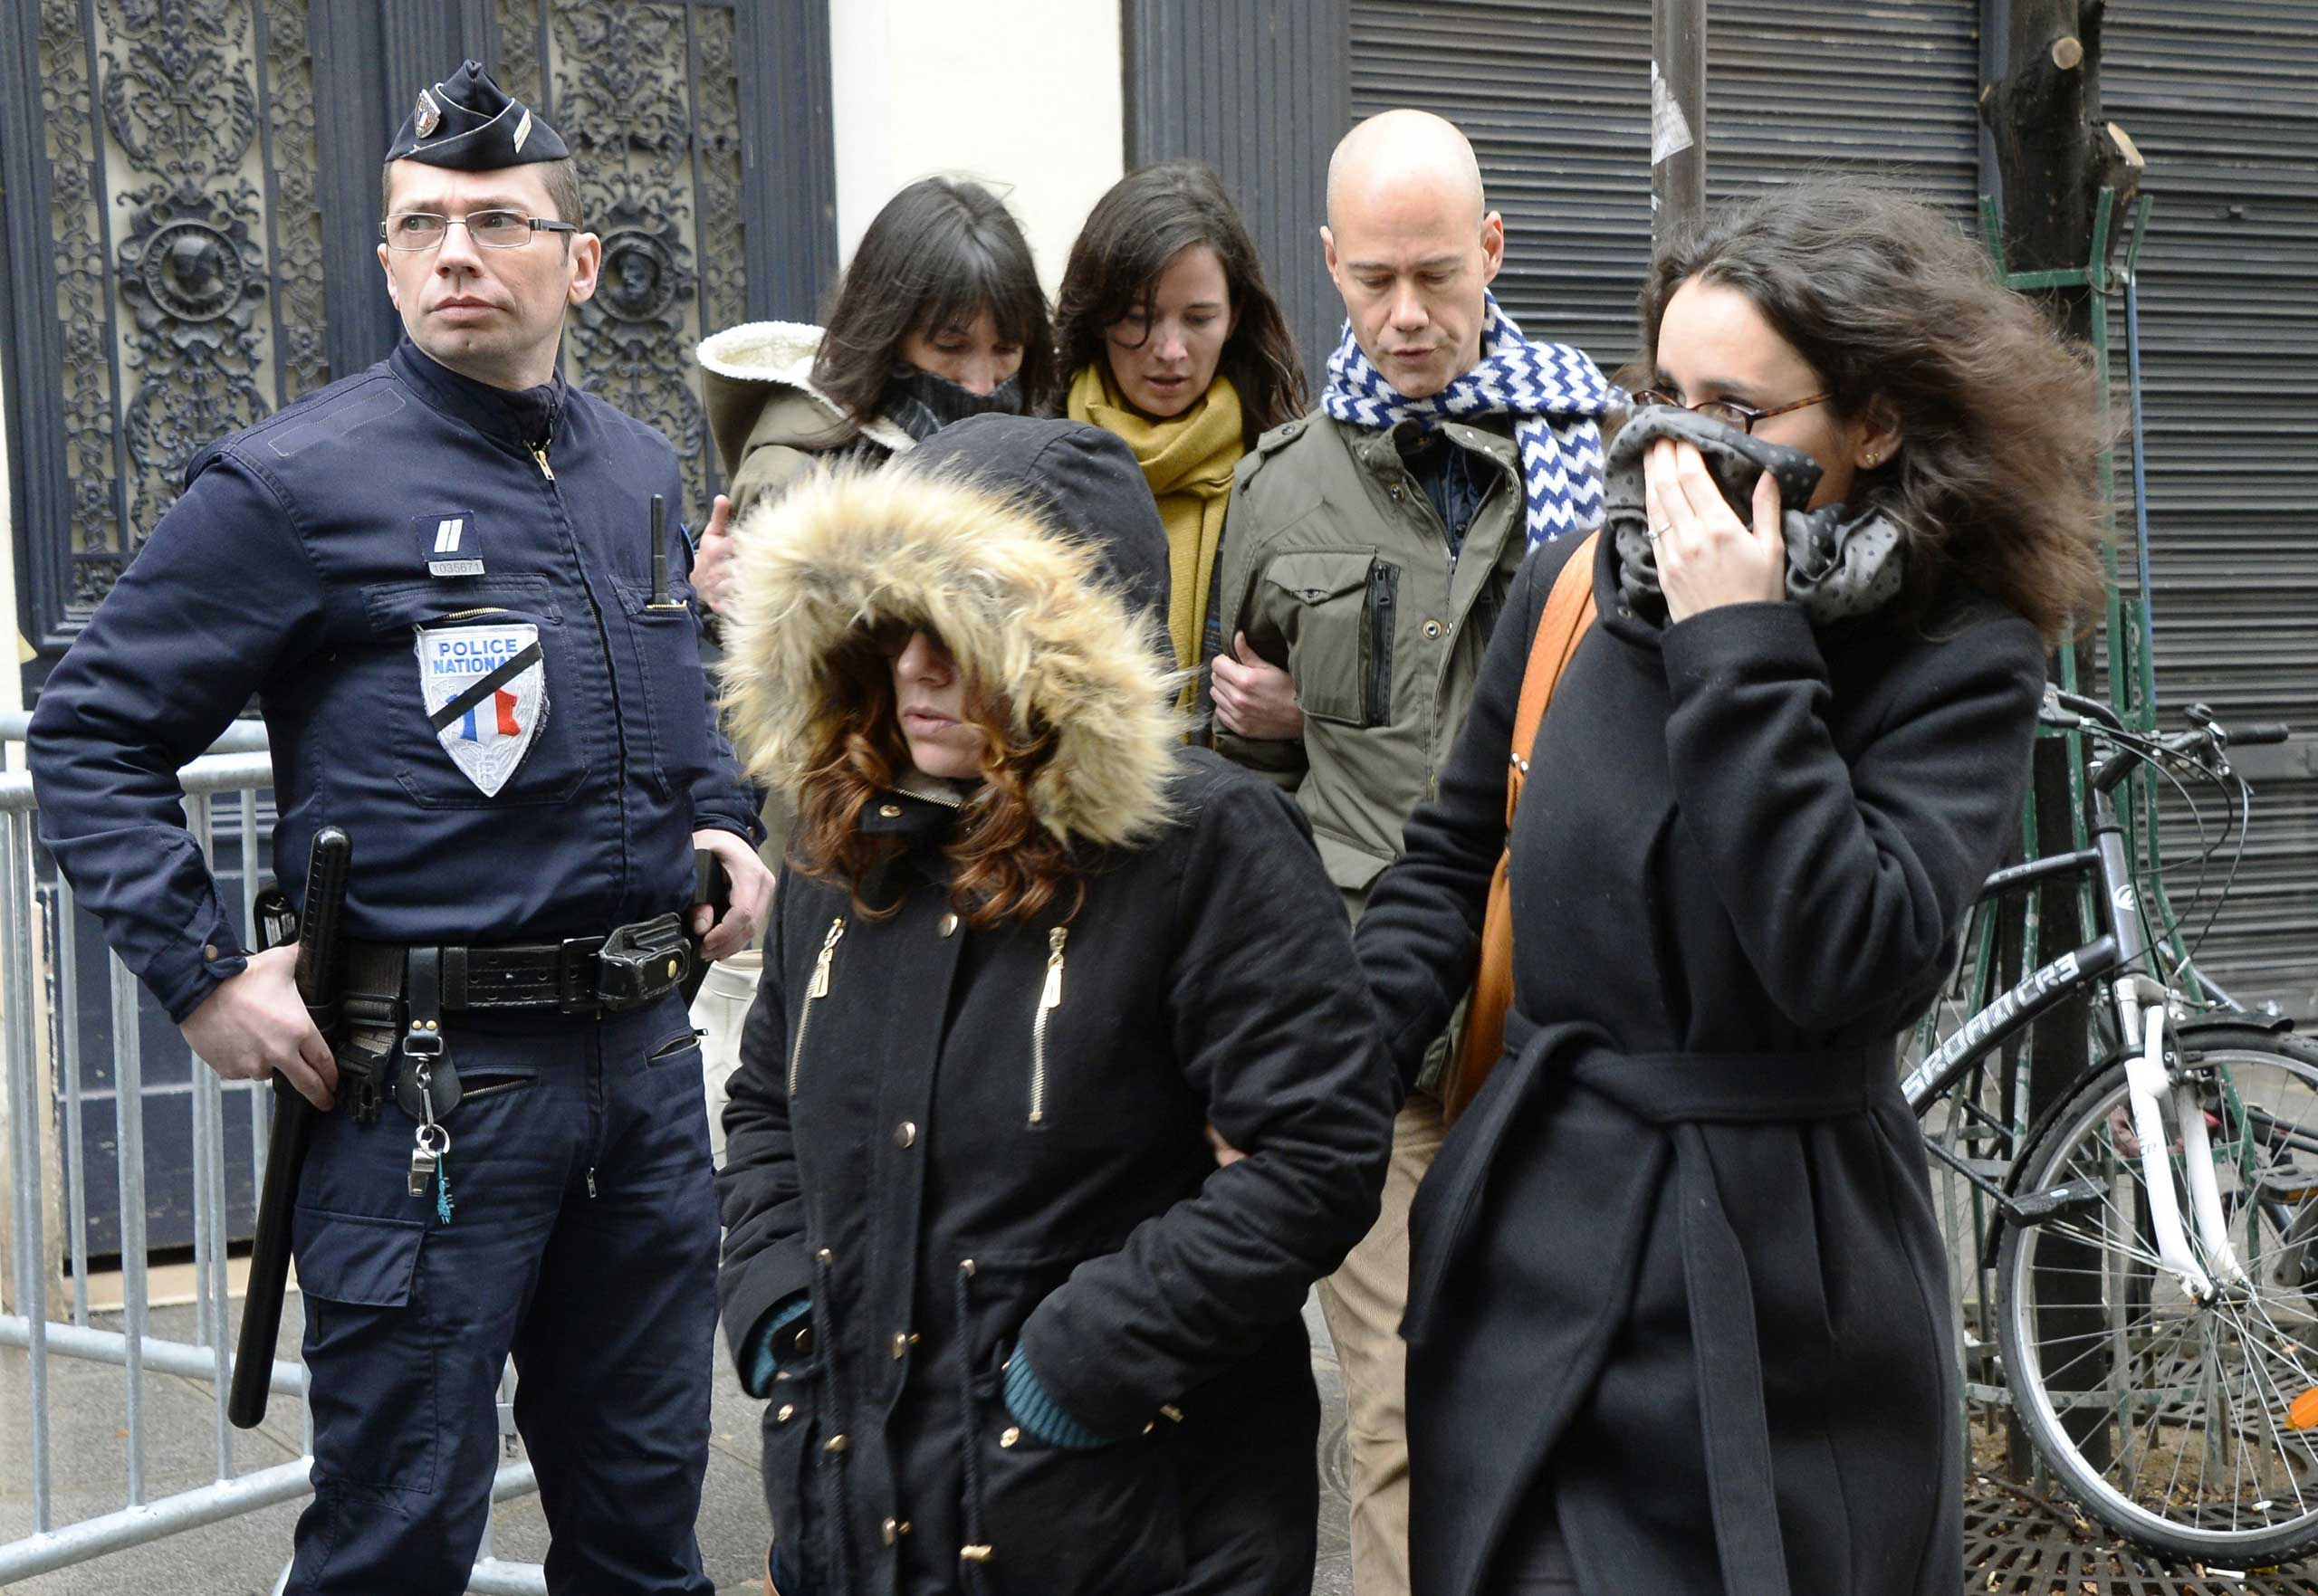 Staff arrive to attend an editorial meeting of French satirical weekly newspaper Charlie Hebdo and Liberation, Jan. 9, 2015 in Paris.